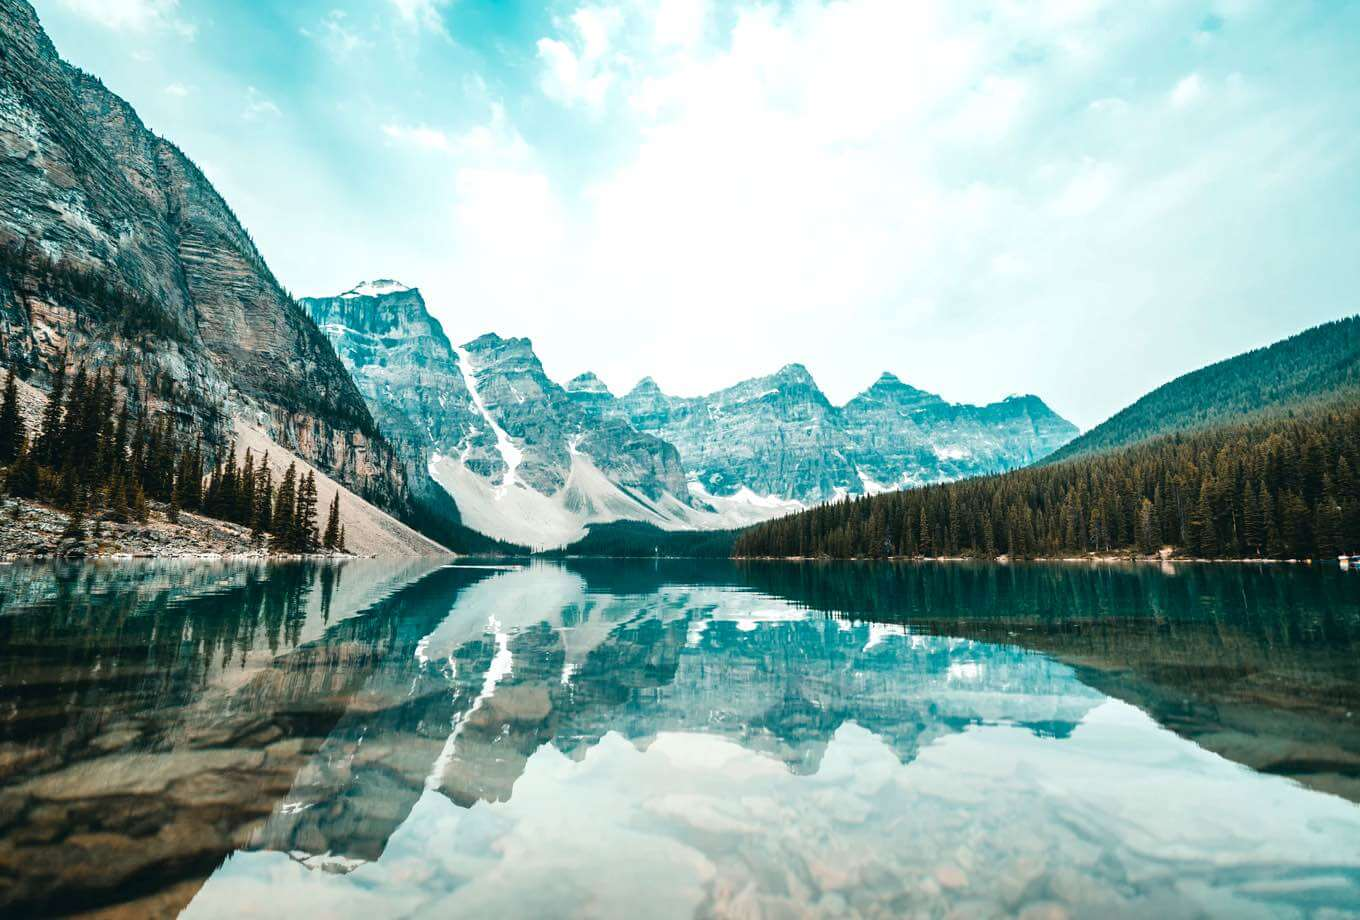 Reflections glistening over Moraine Lake in Banff